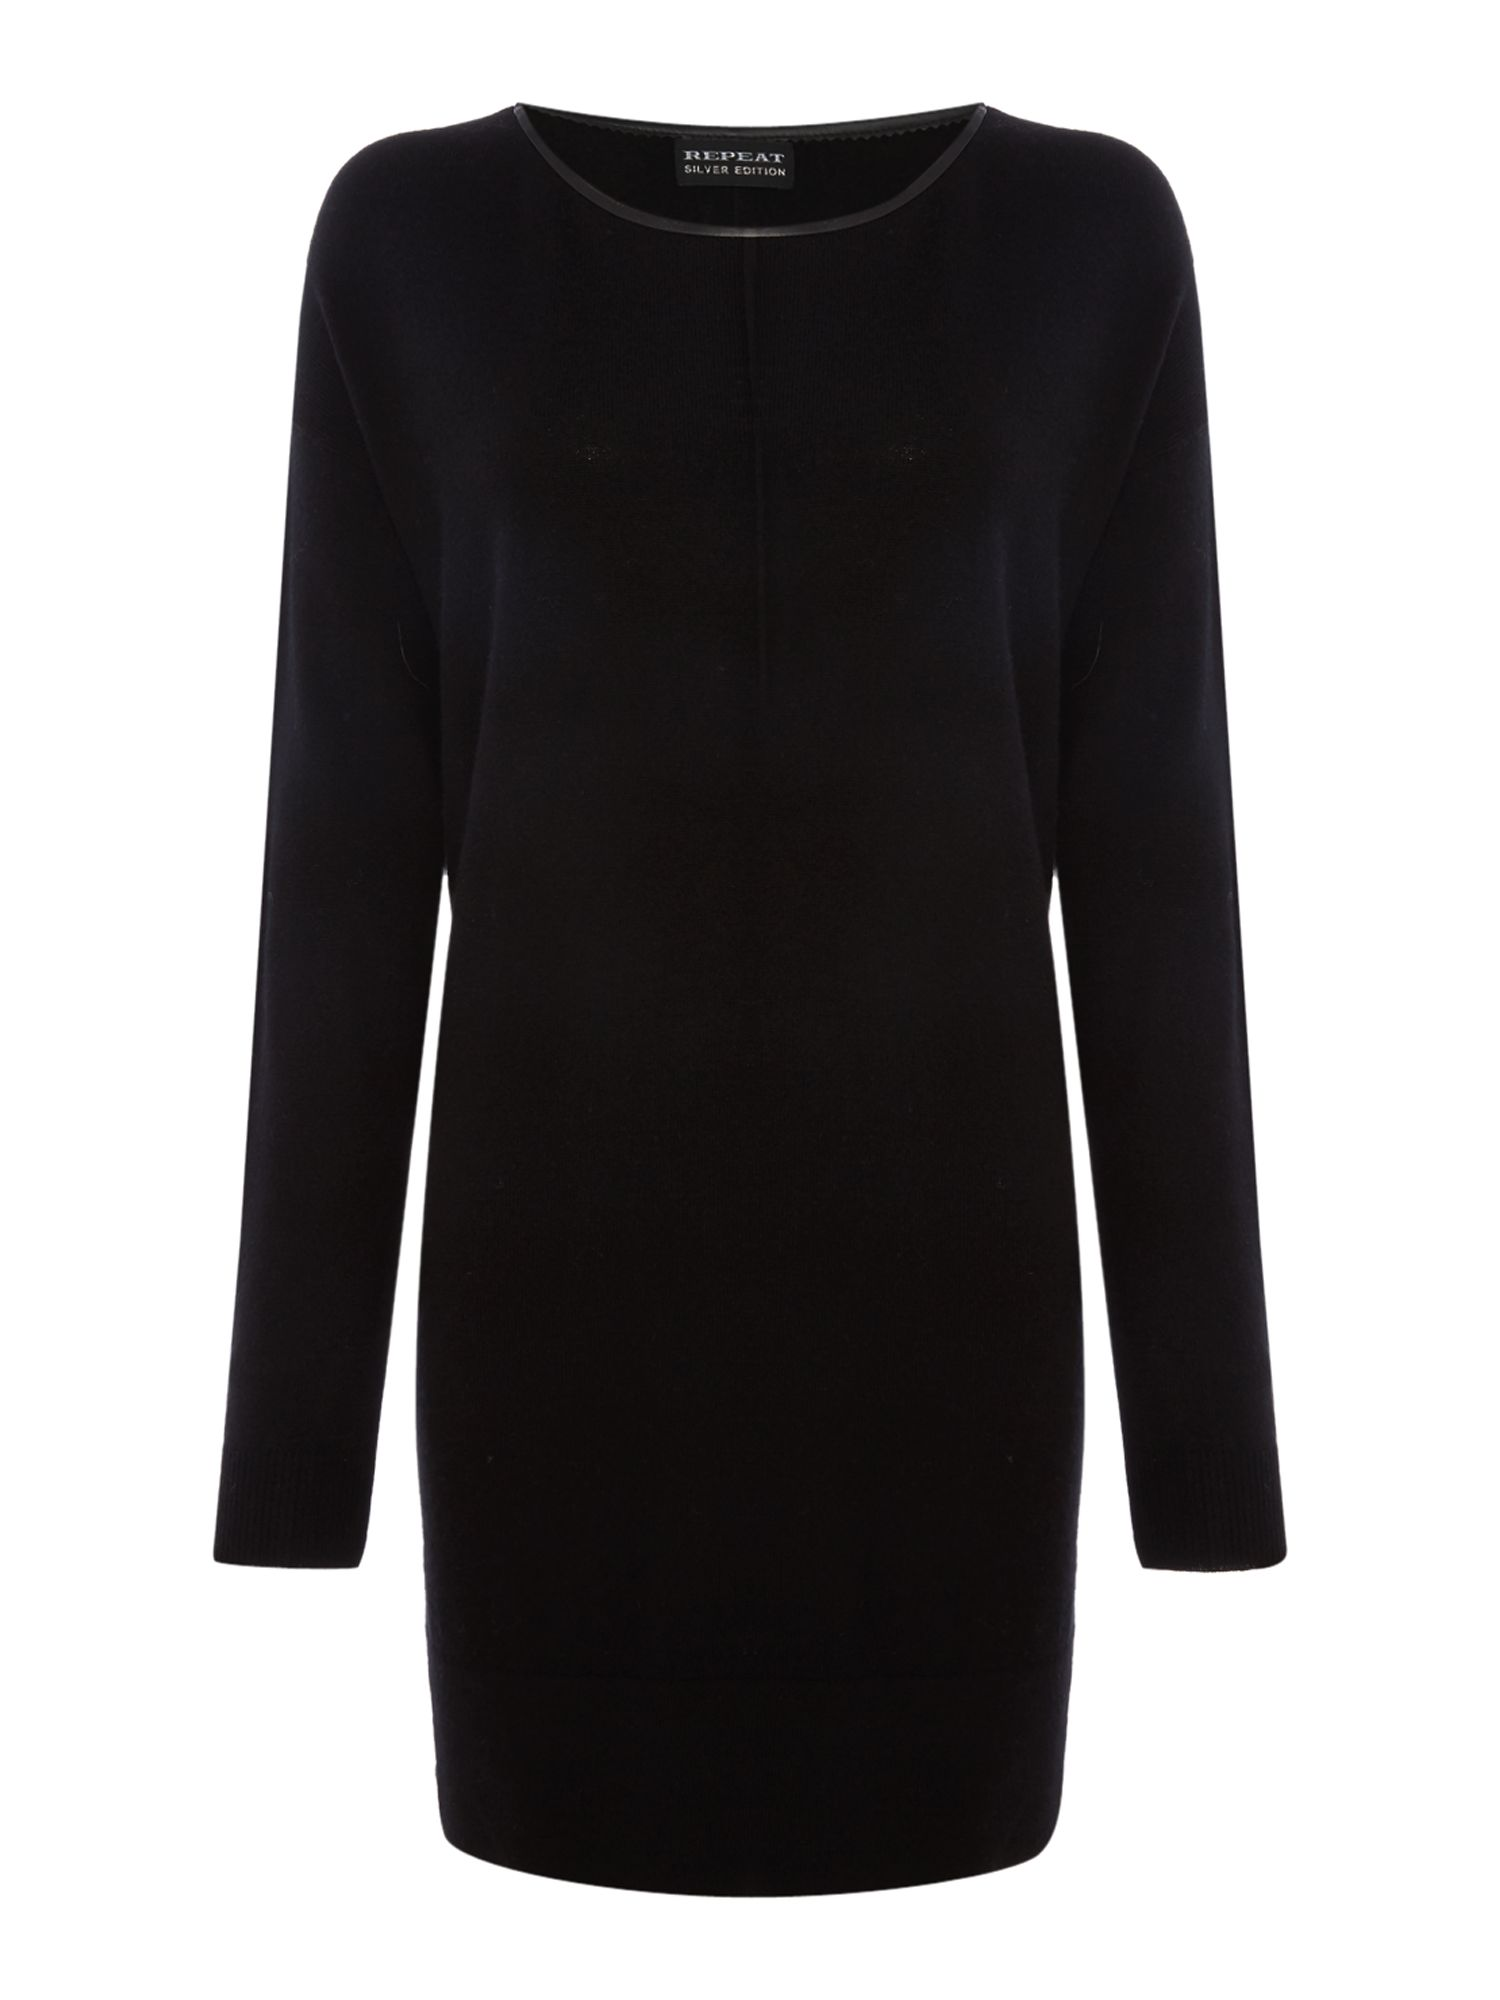 Repeat Cashmere Repeat Cashmere Leather trim dress, Black